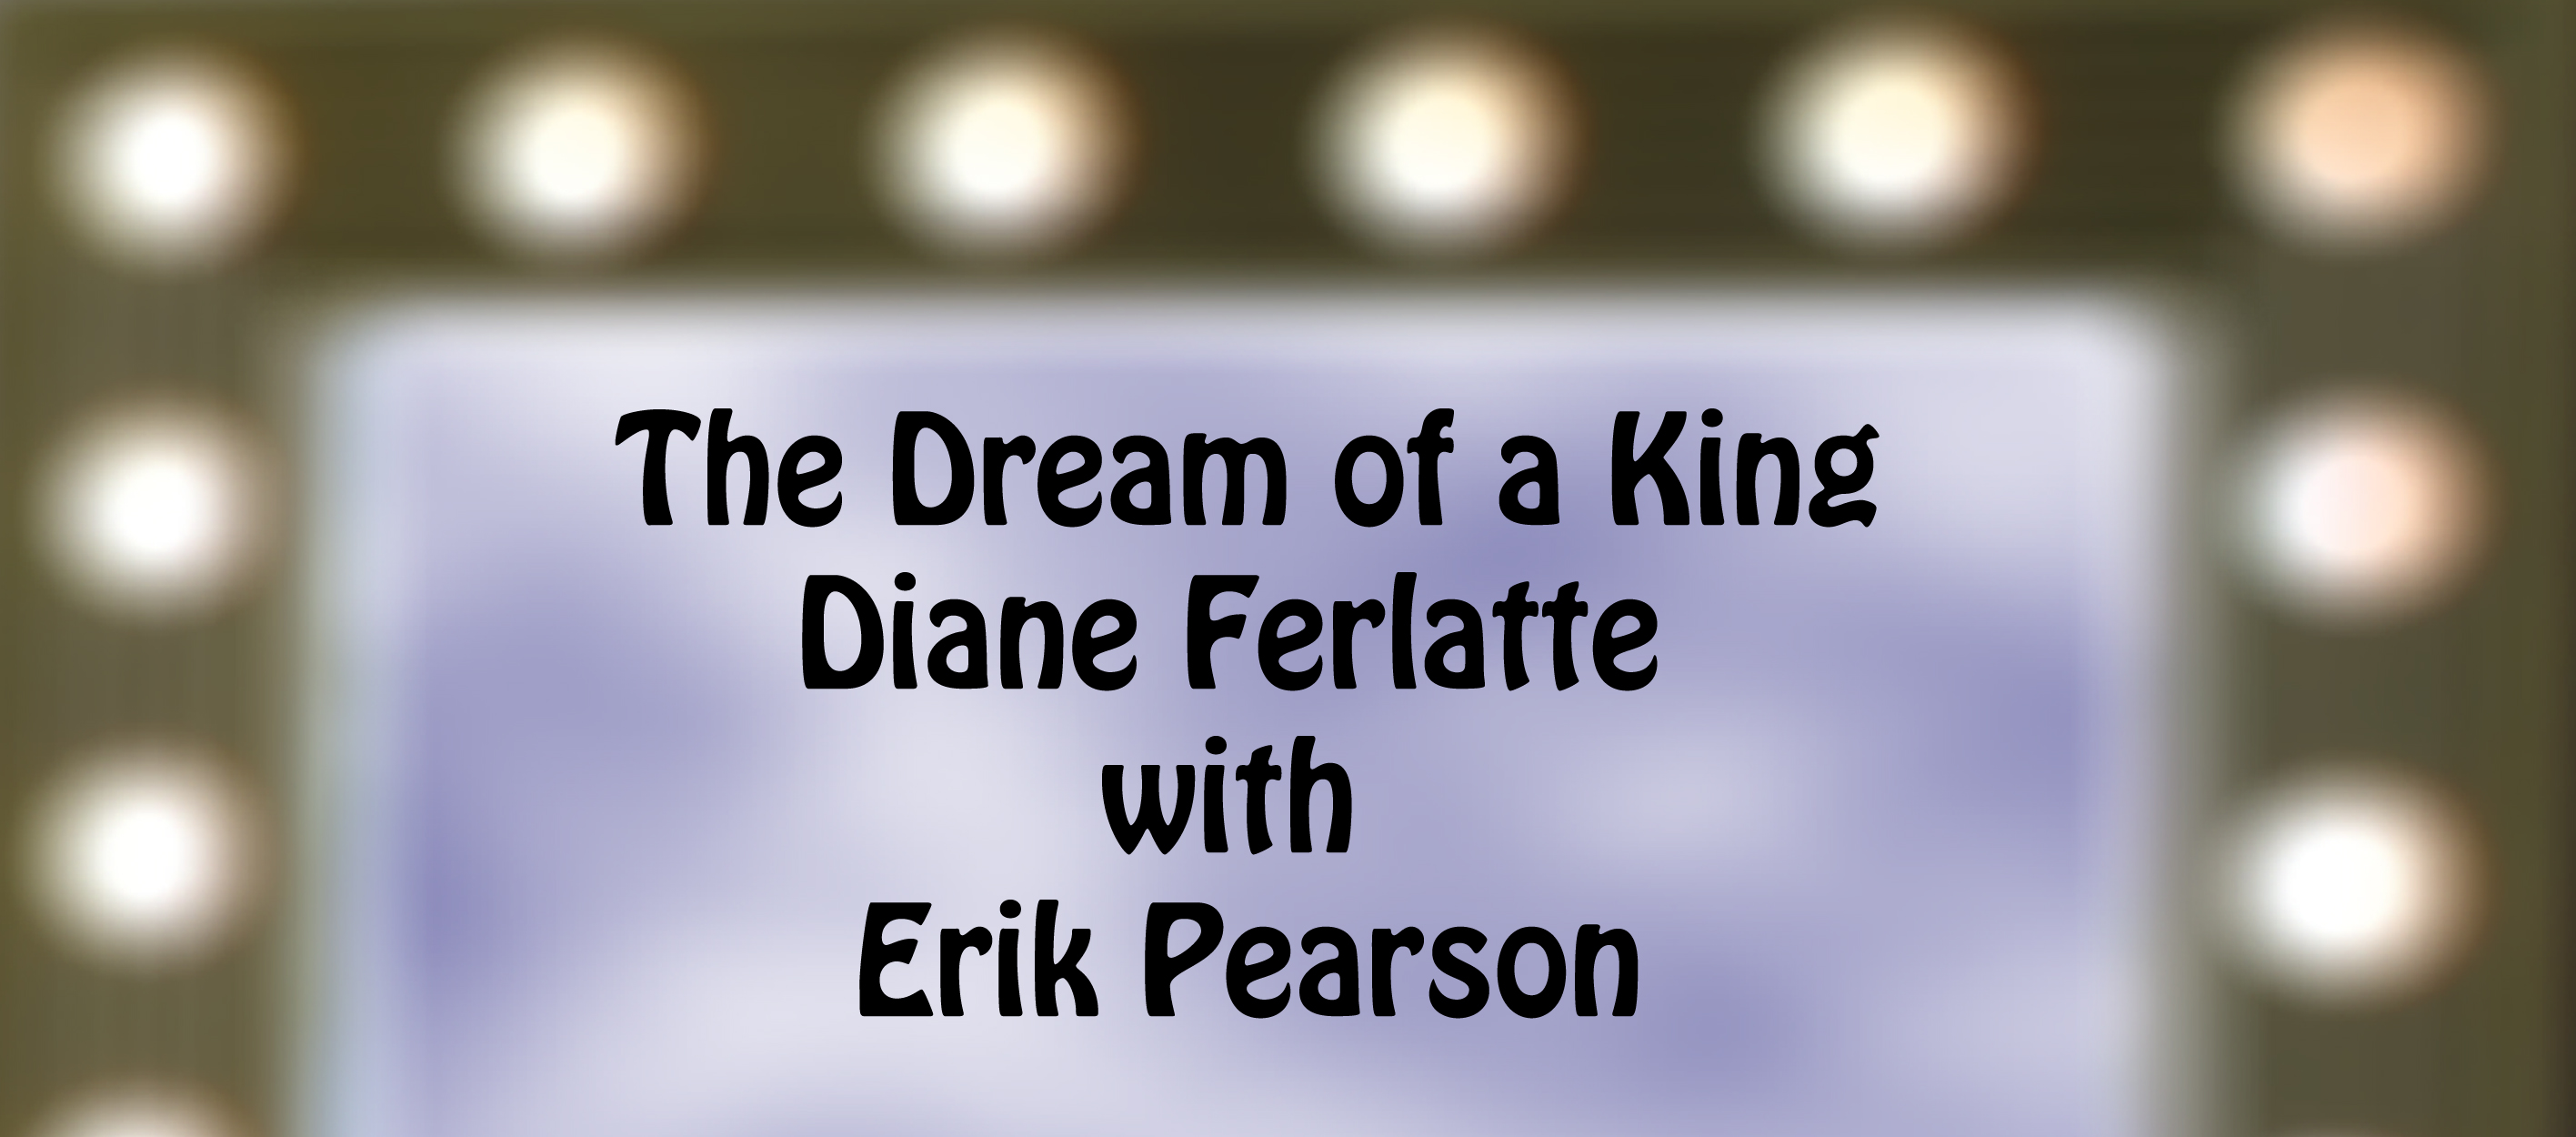 """The Dream of a King"" - Diane Ferlatte with Erik Pearson"